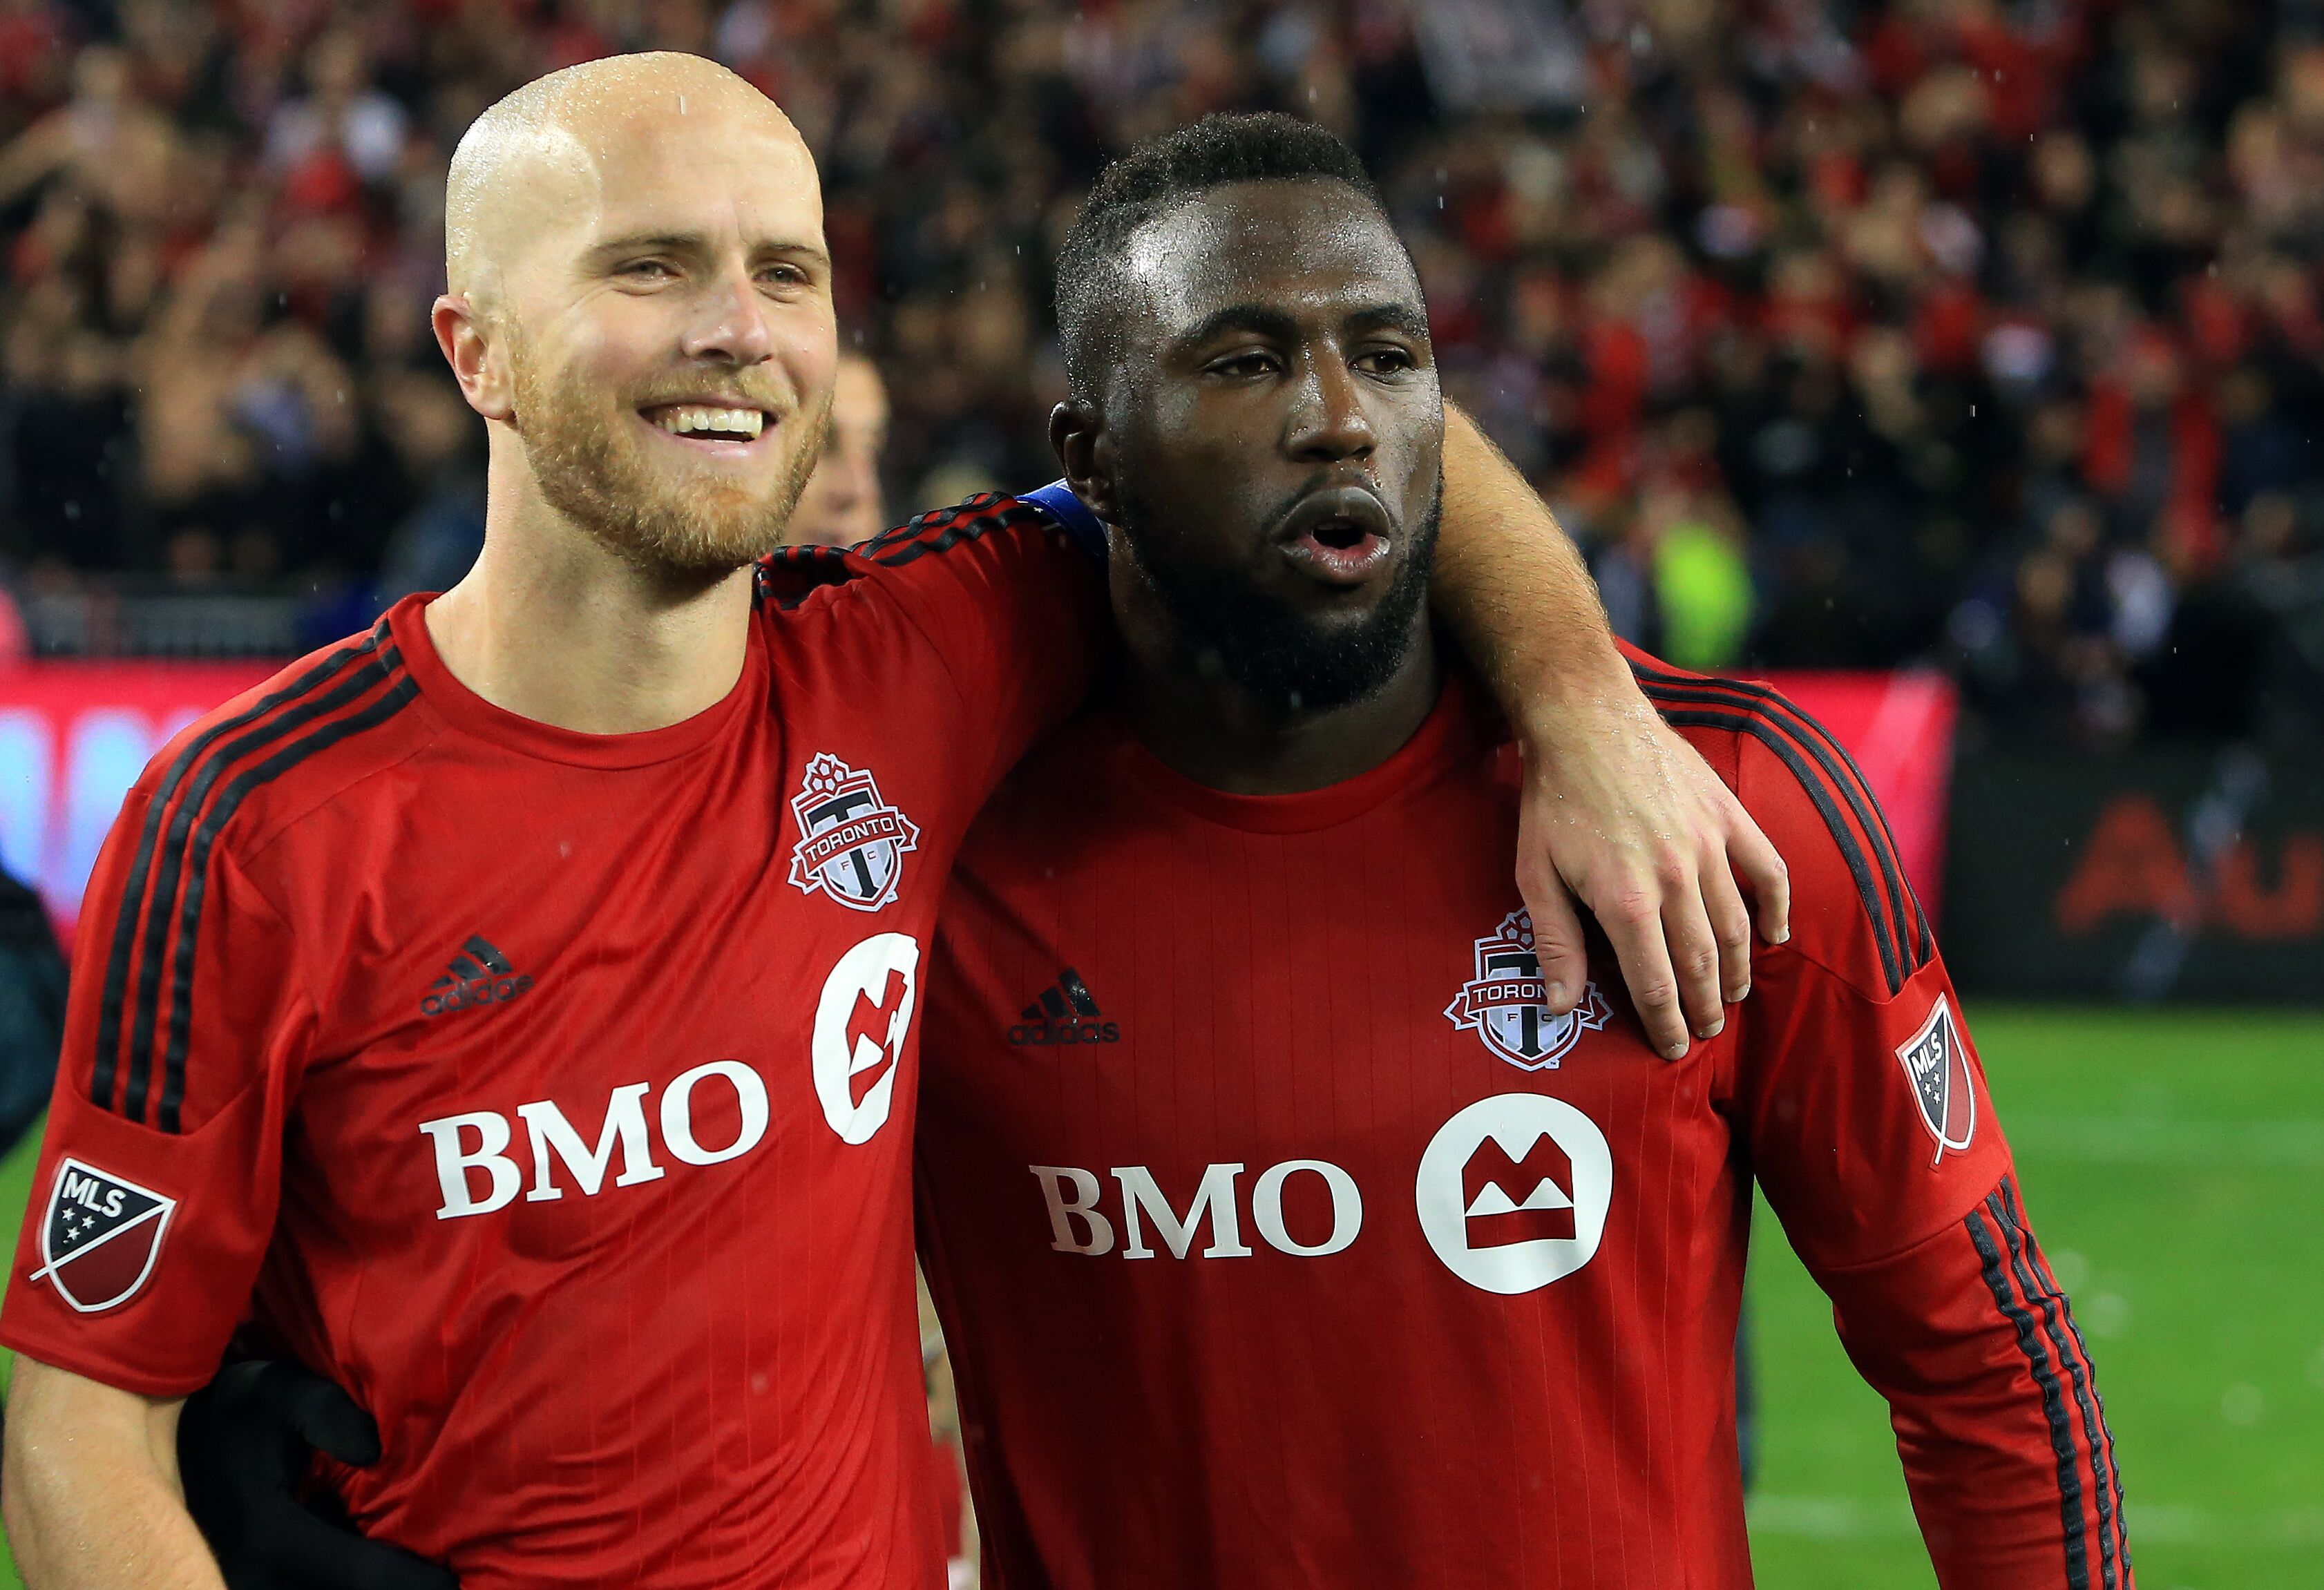 Toronto FC: Jozy Altidore's comments about Bradley are concerning